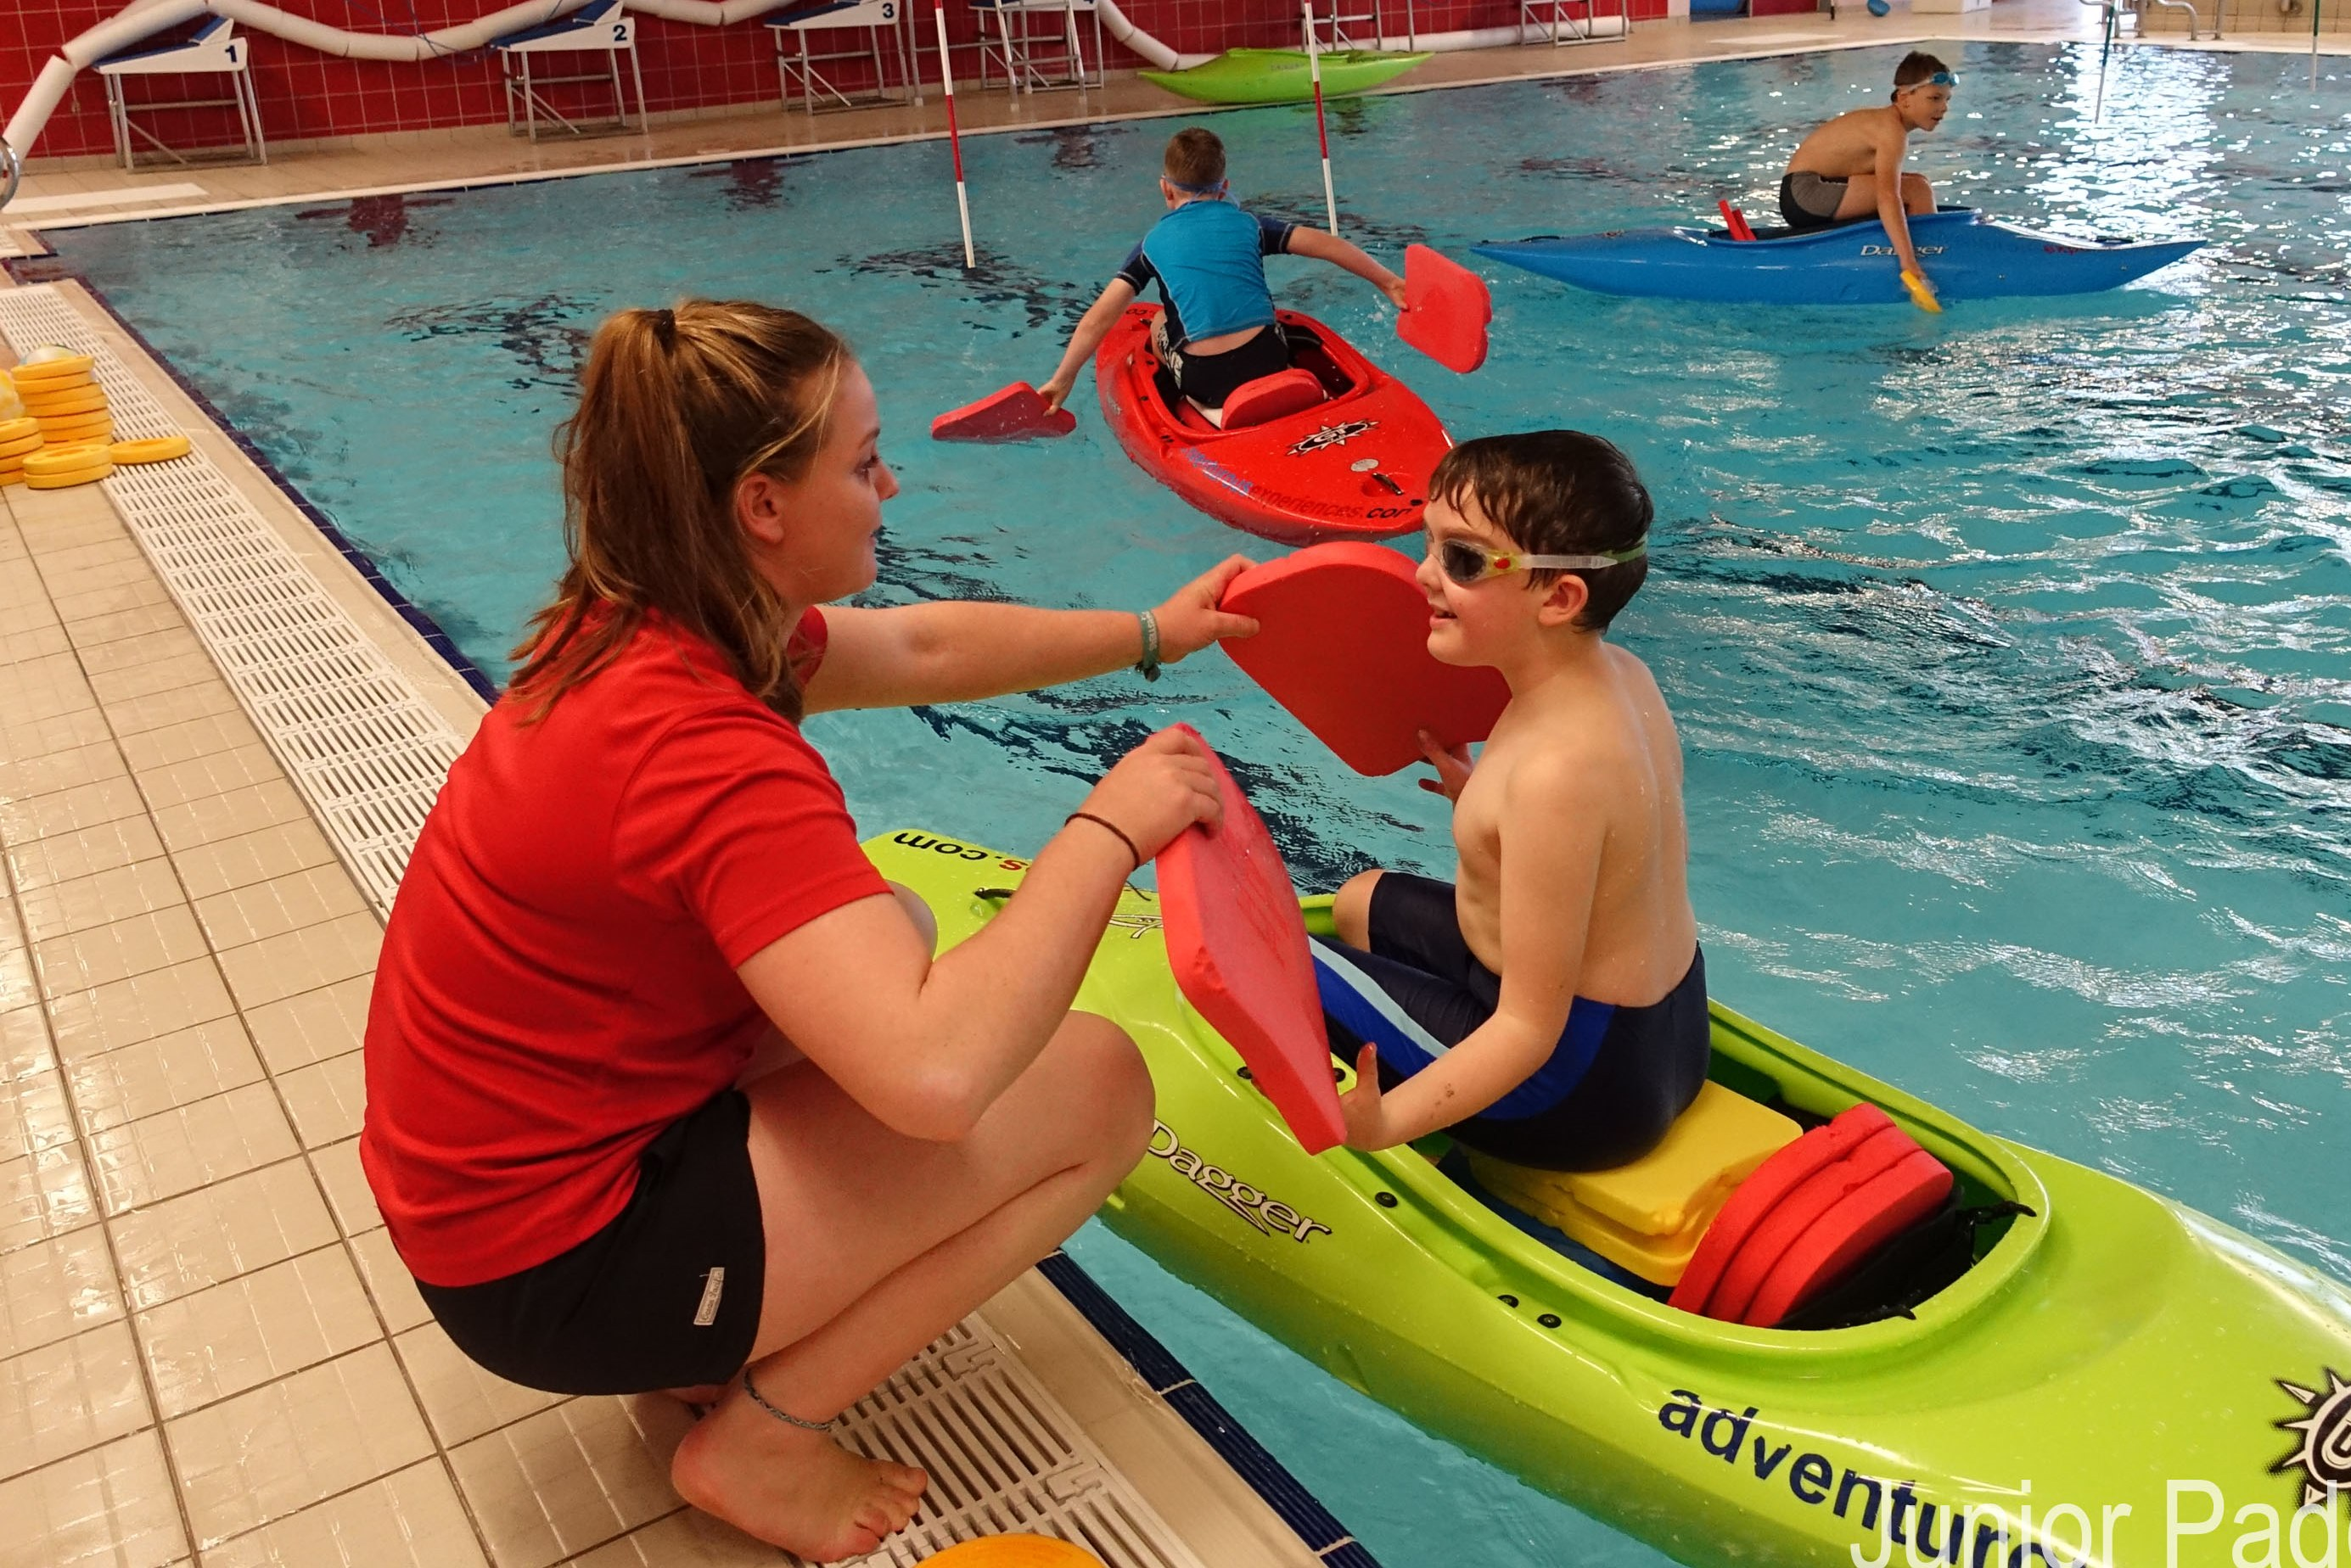 Junior Paddlesport Isle of Man - Innovative Coaching